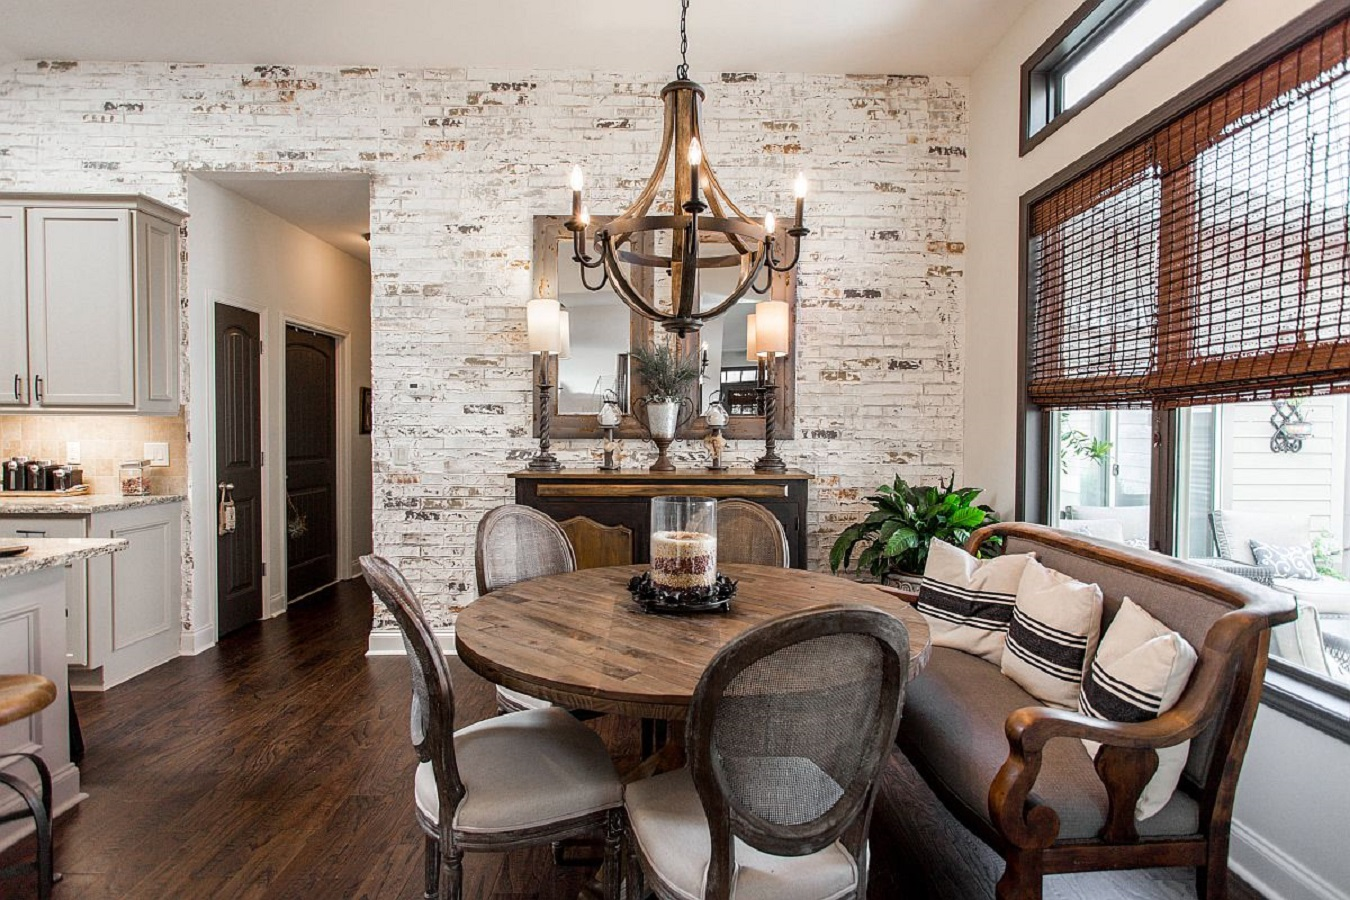 2 Magnificent White Dining Room Ideas Look Gorgeous With the Uniqueness Of Brick Walls